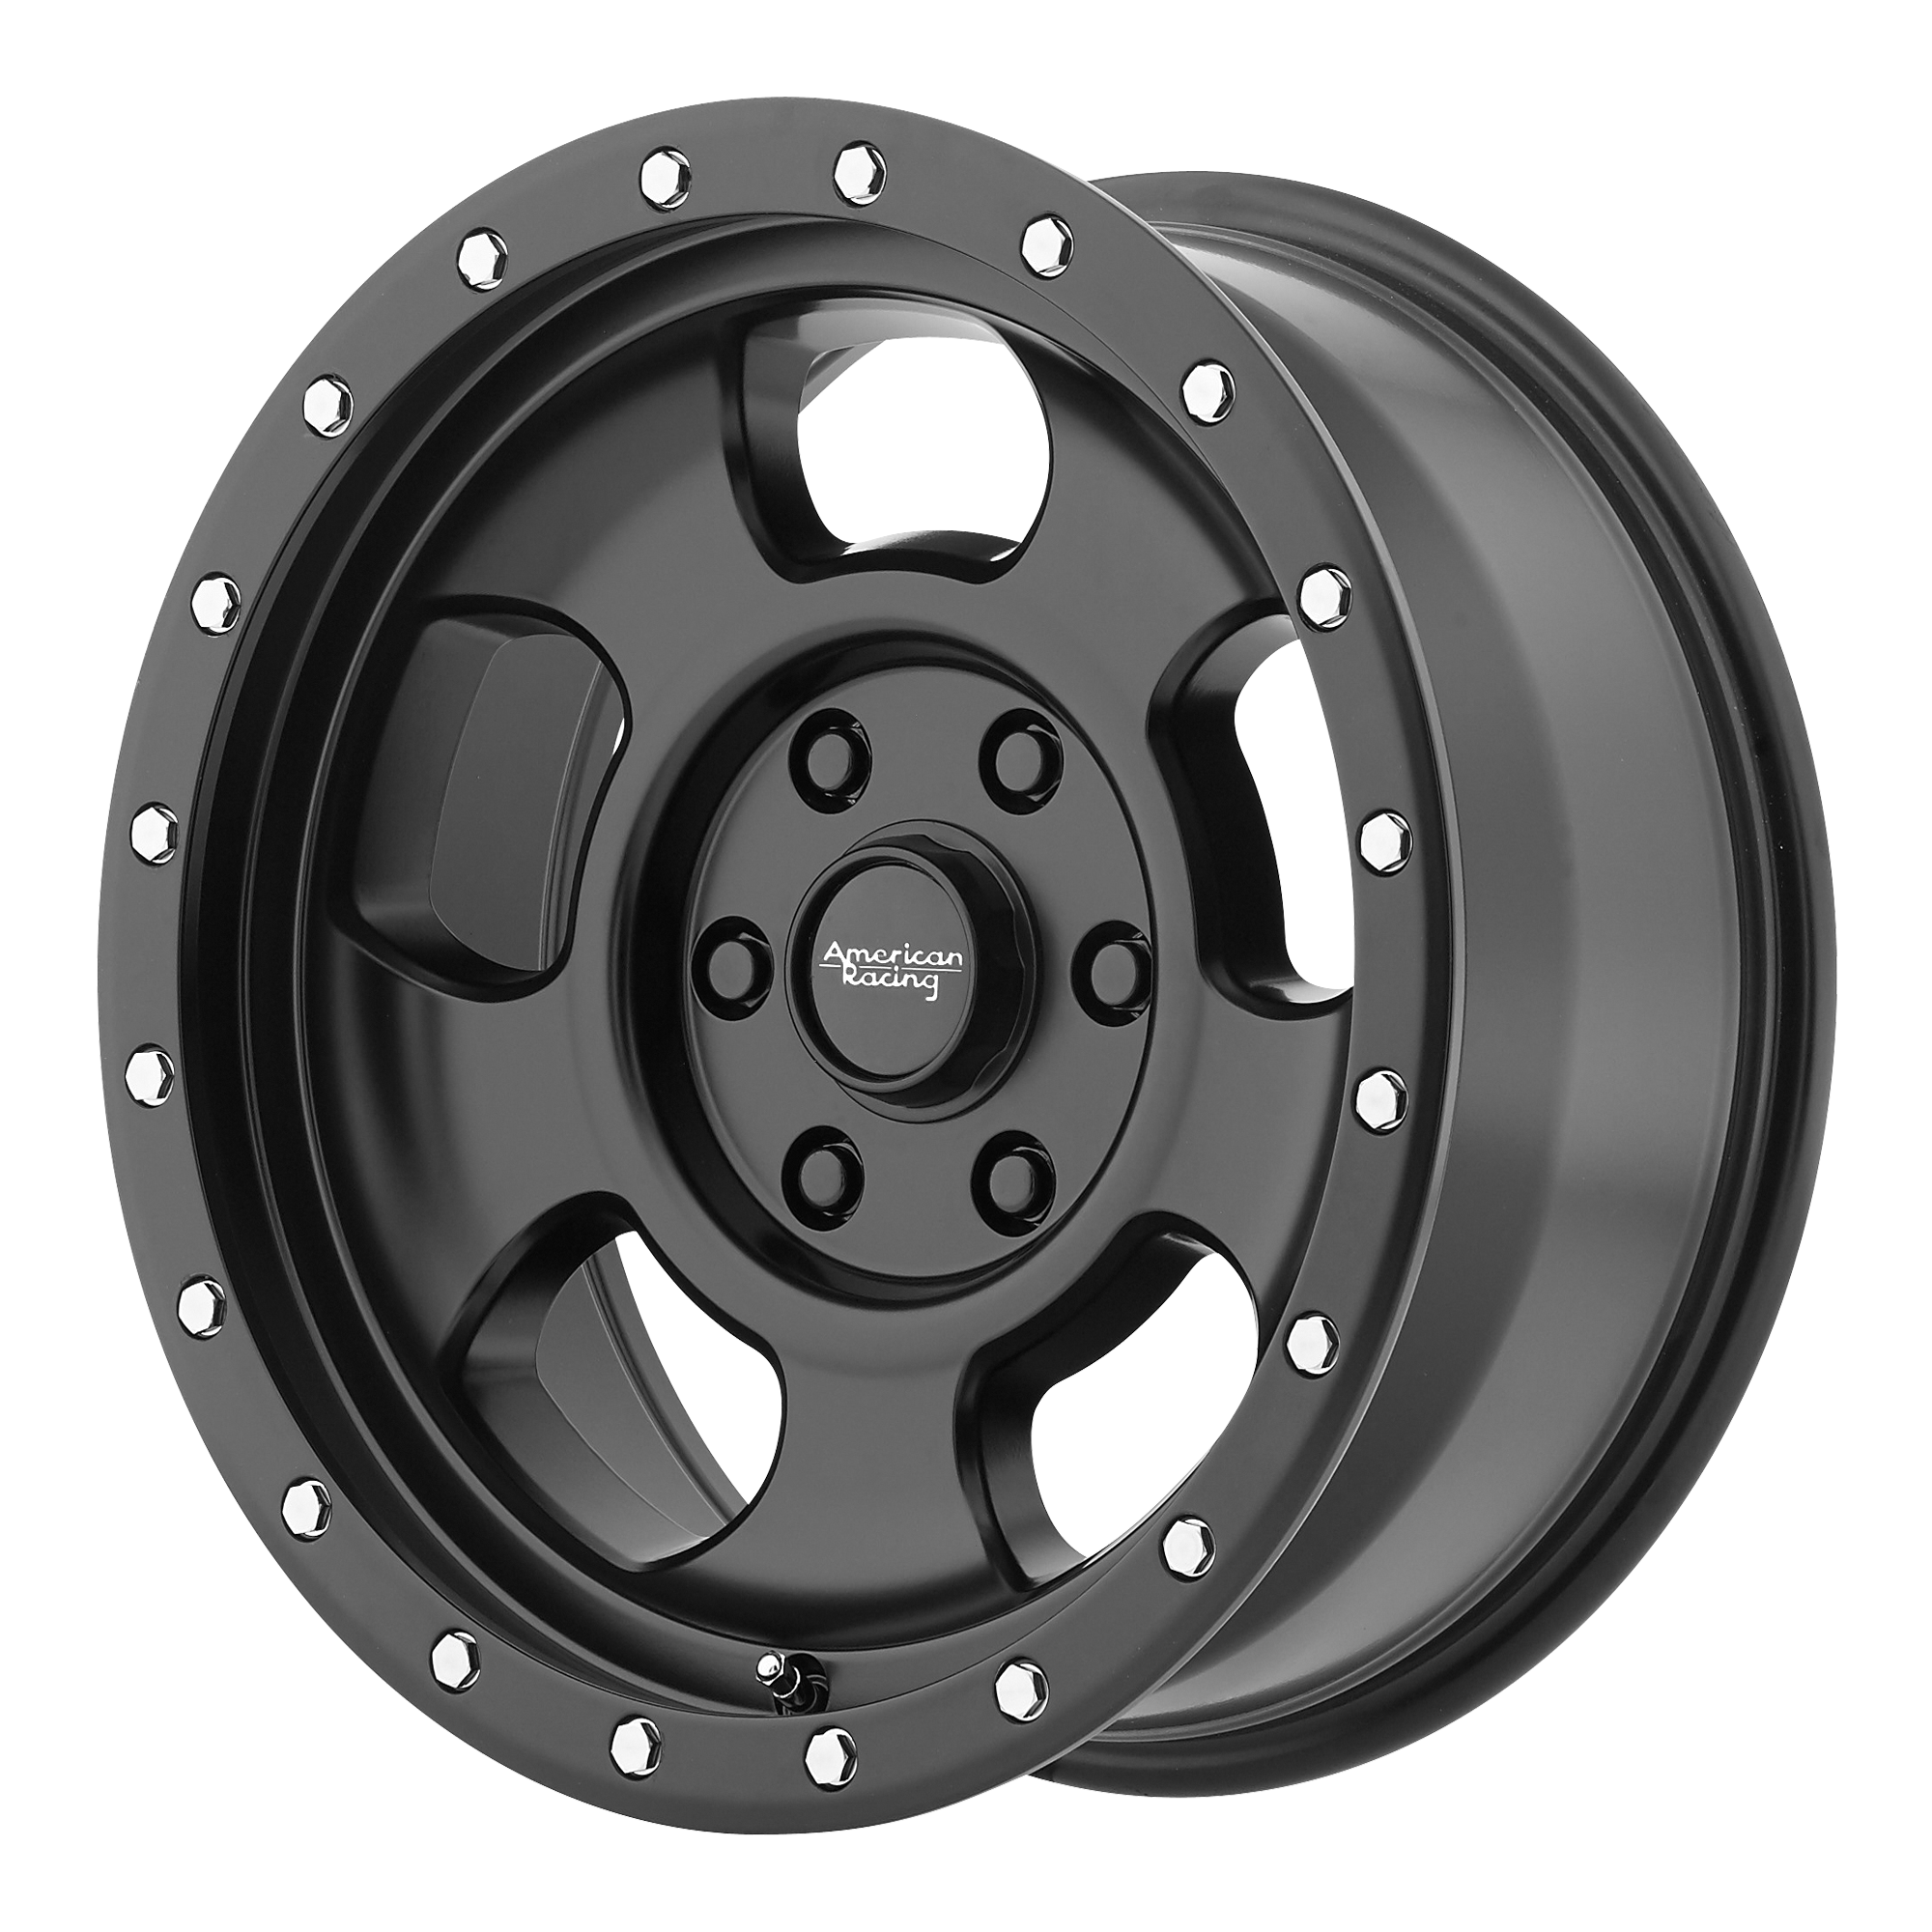 American Racing Wheels AR969 ANSEN OFFROAD Black